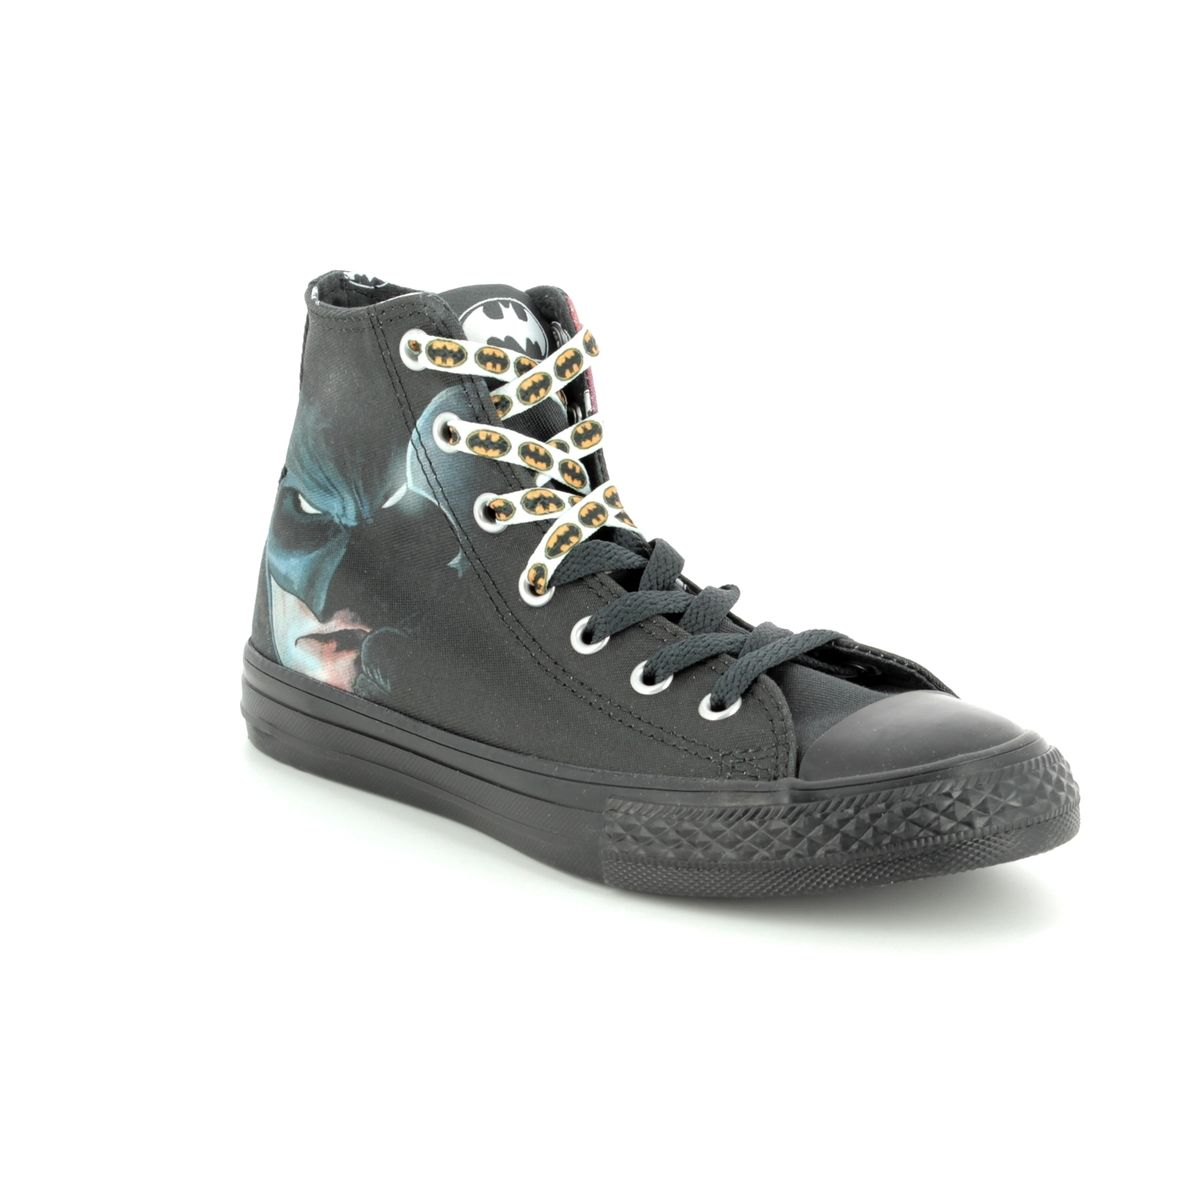 42d9a4c14cb29d Converse Trainers - Black - 361305F All Star Batman Hi Top